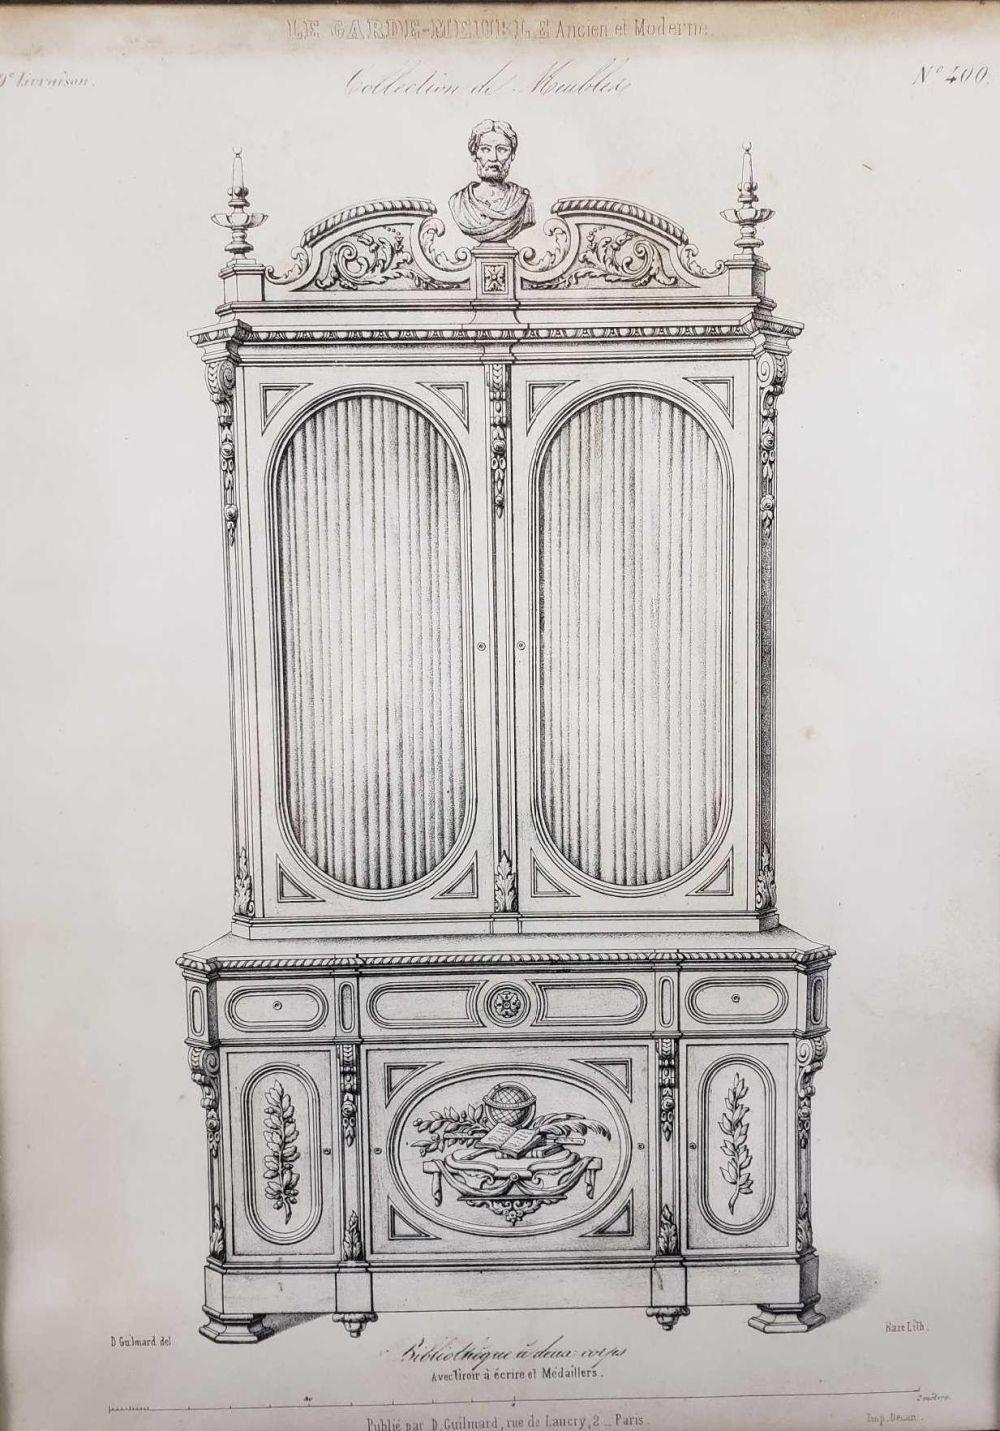 Lot 573: Desire Guilmard Le Garde Meuble Ancien et Moderne Framed French Decorative Art Lithograph